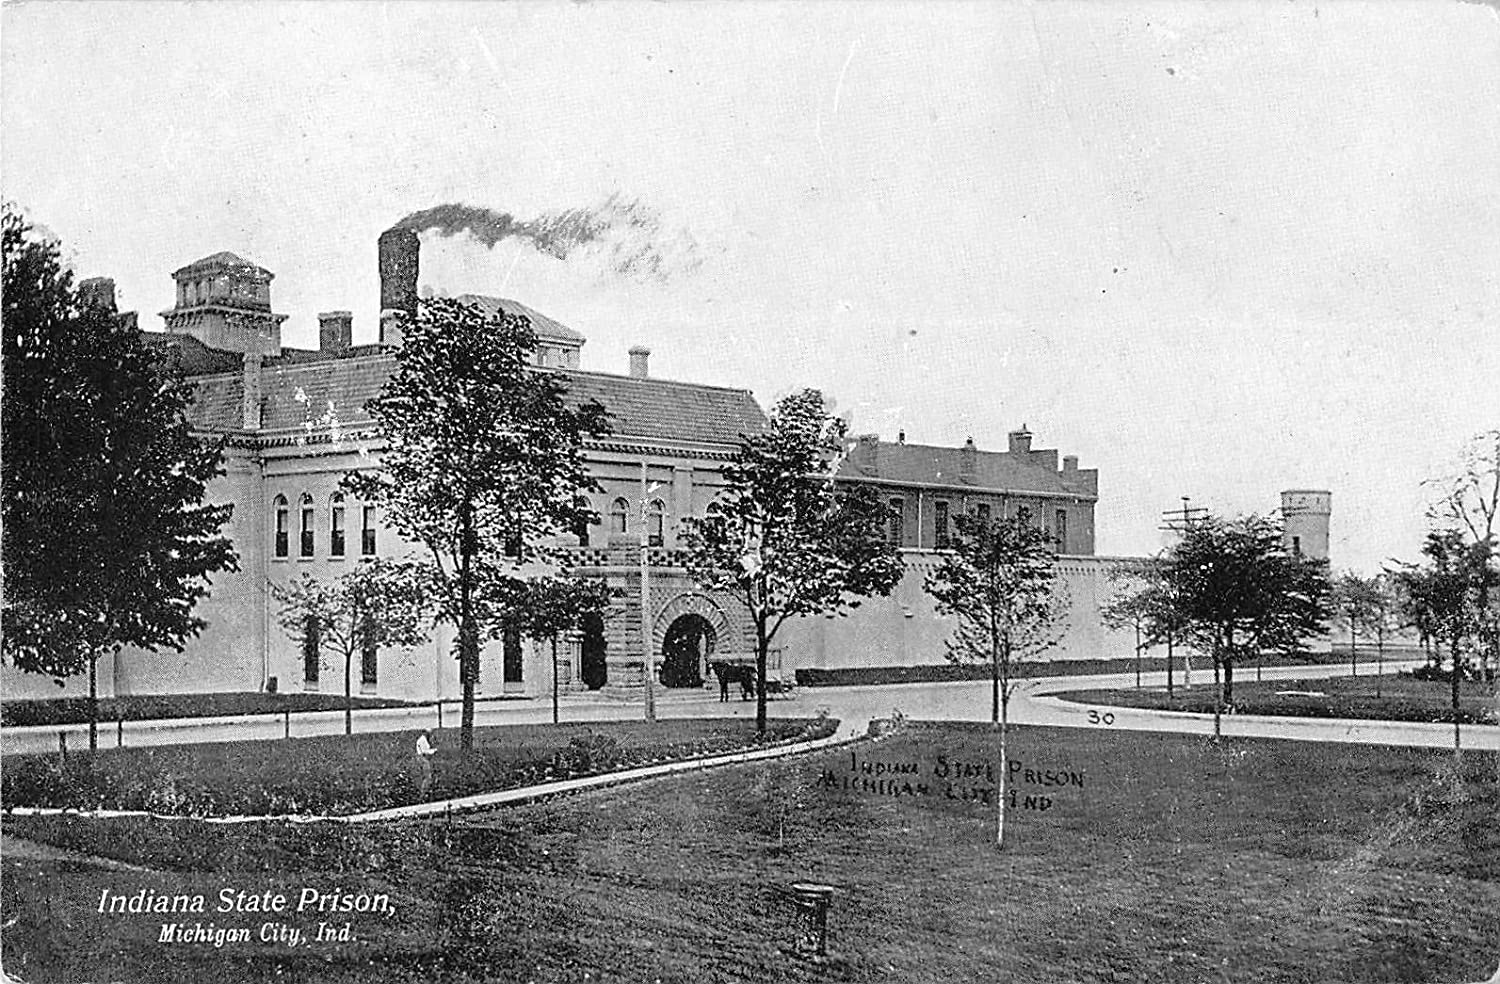 Michigan City Indiana Indiana State Prison View From Lawn Antique Pc V7756 At Amazon S Entertainment Collectibles Store